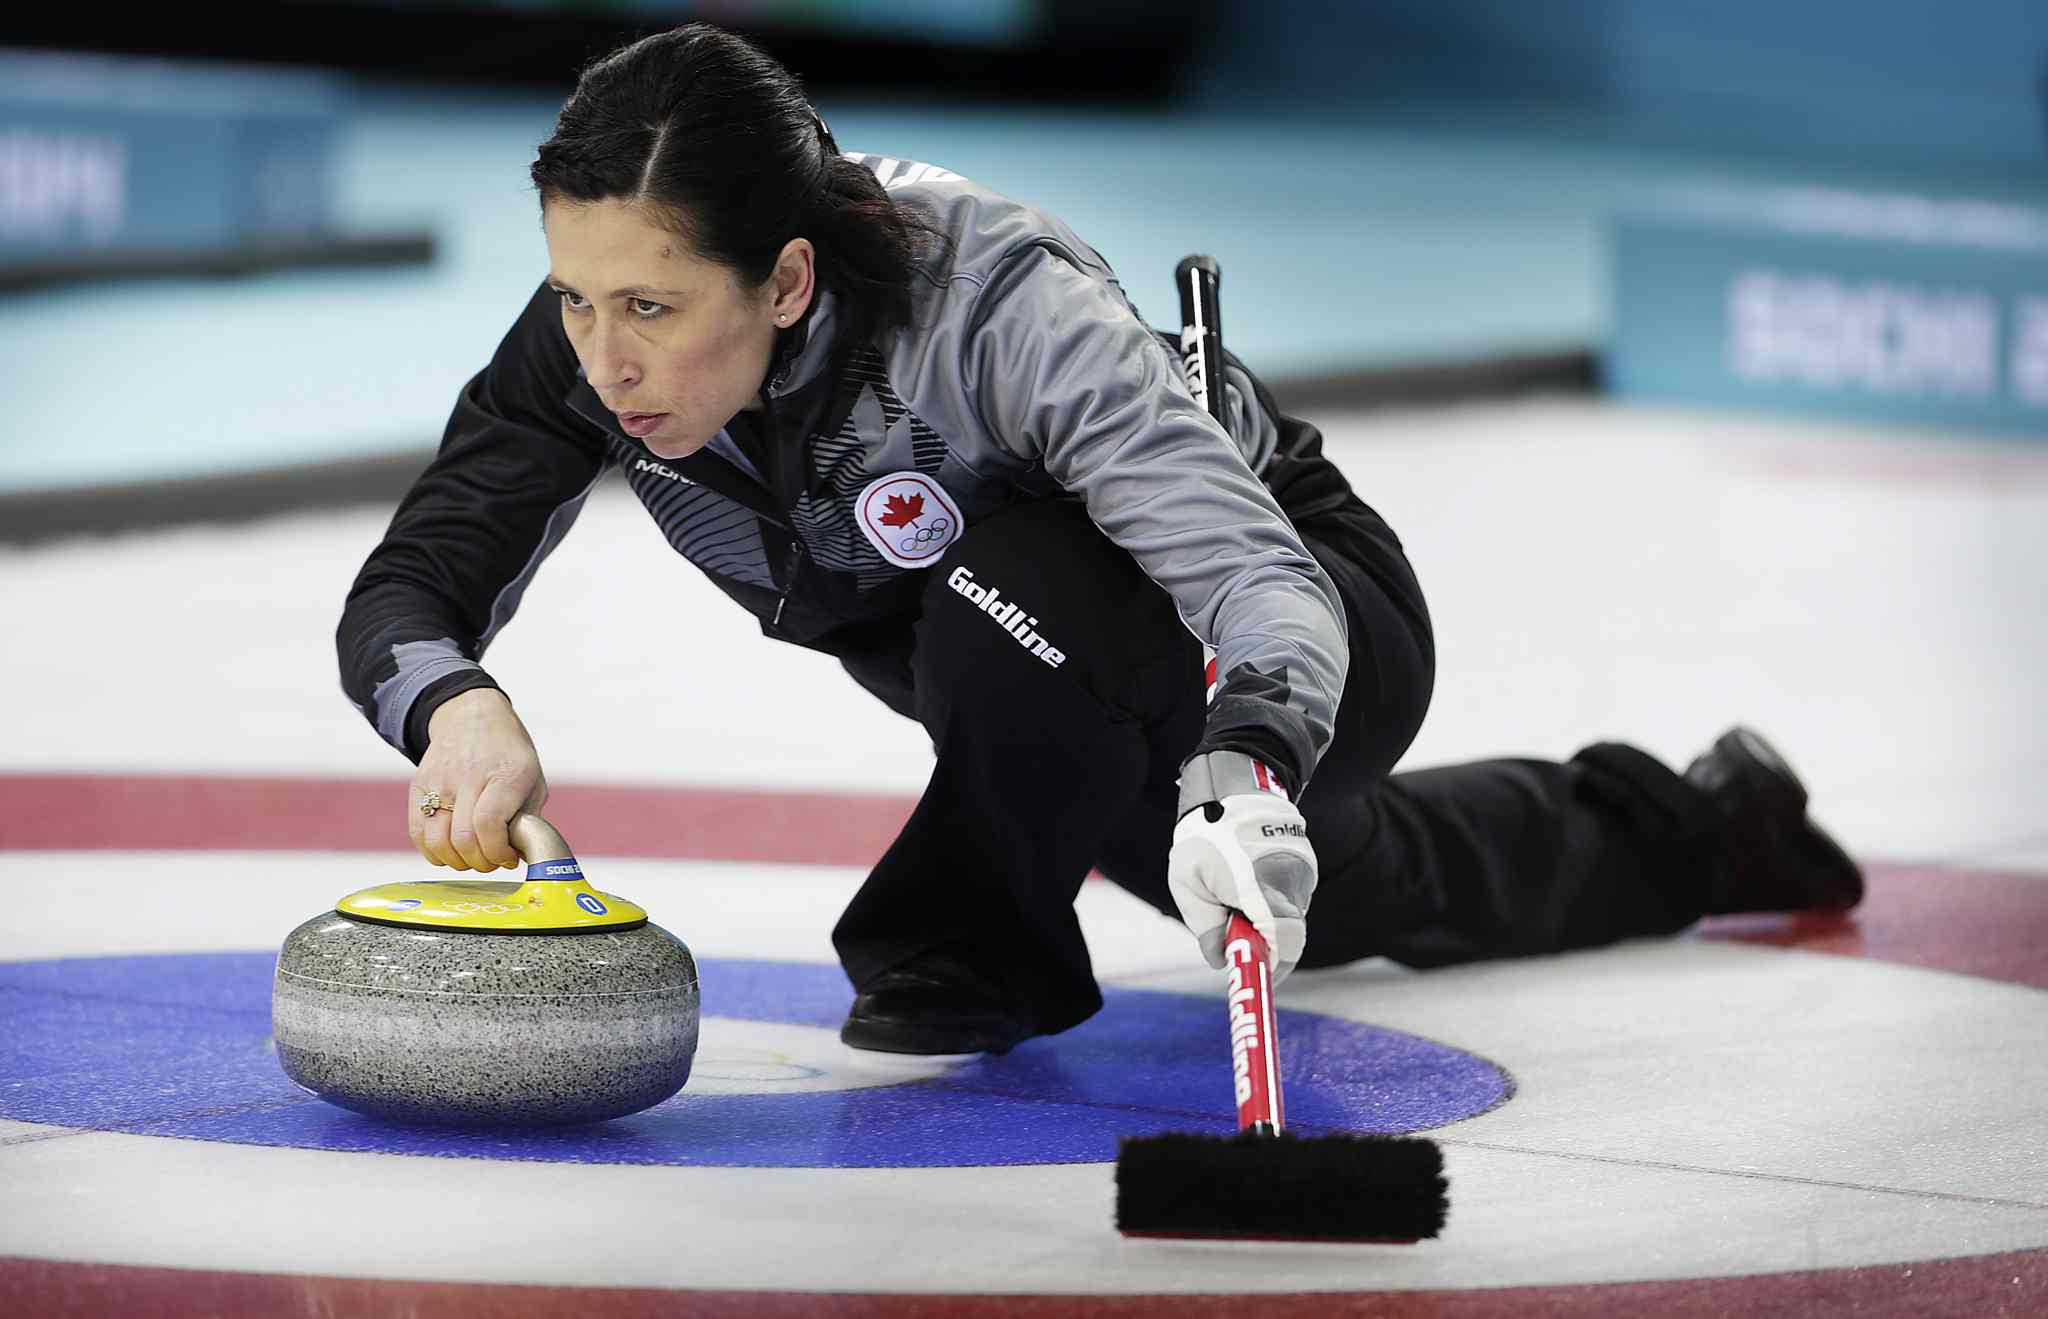 Jill Officer delivers a rock during a training session at the 2014 Winter Olympics.